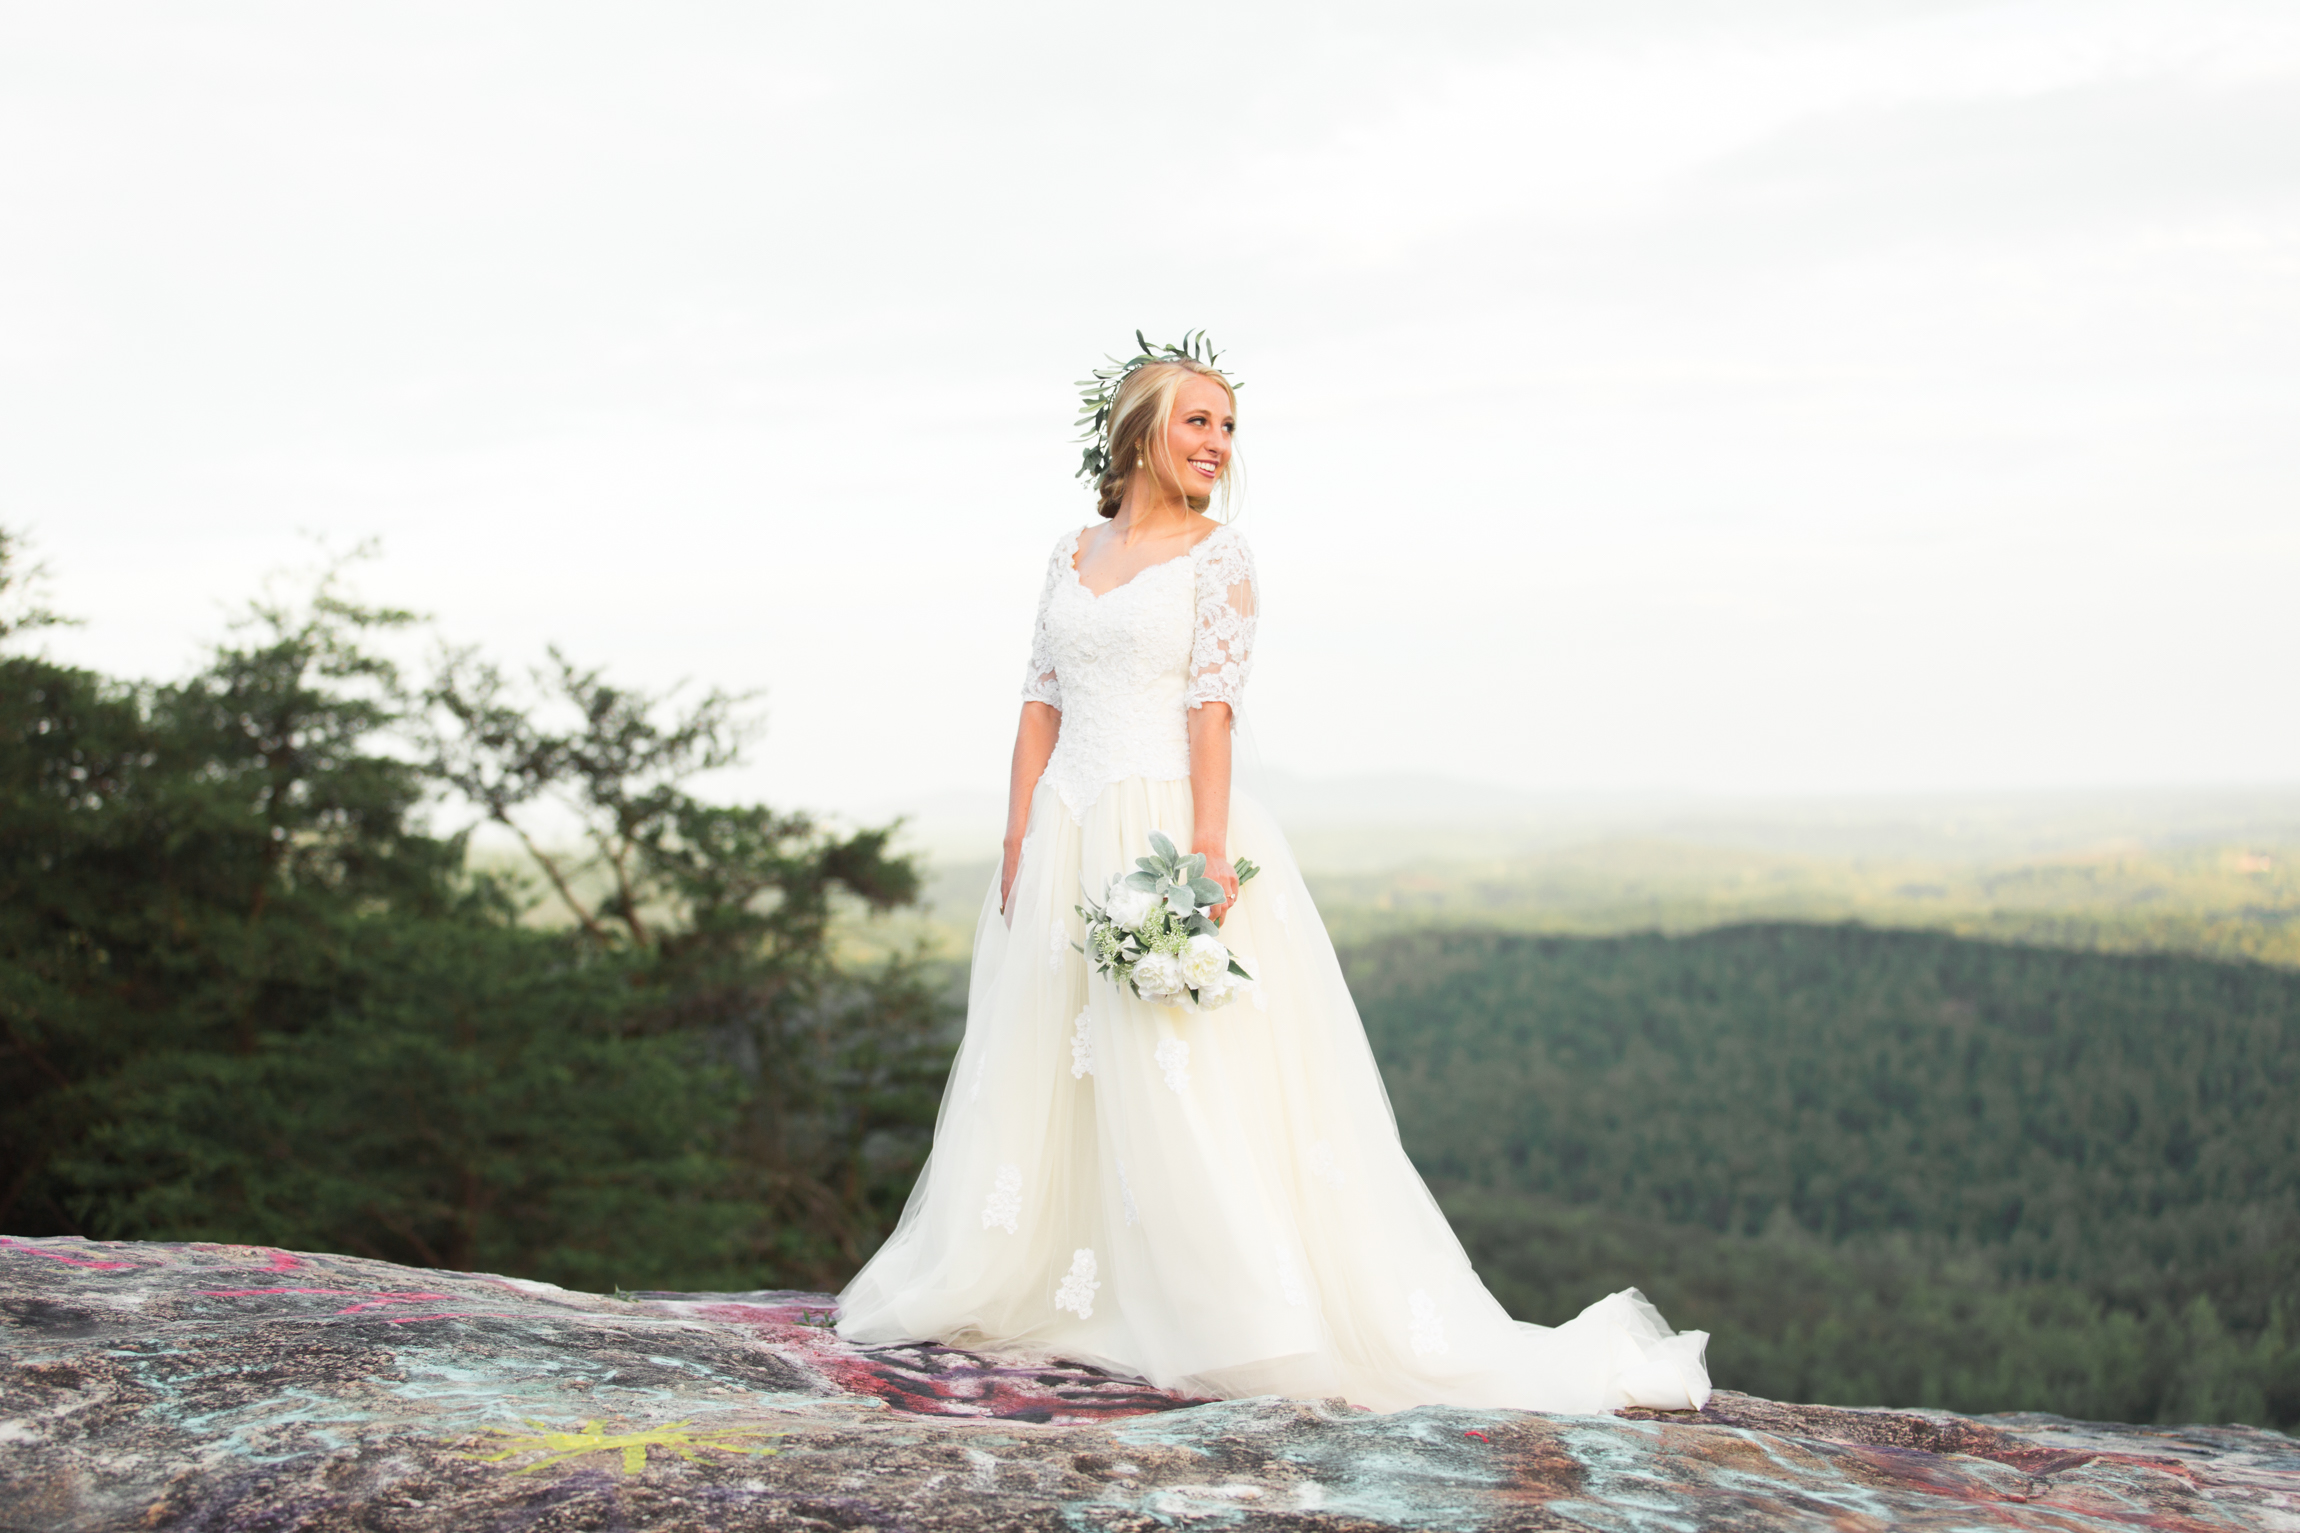 Lauren-Bald Rock South Carolina Bridal Photos-0599.jpg